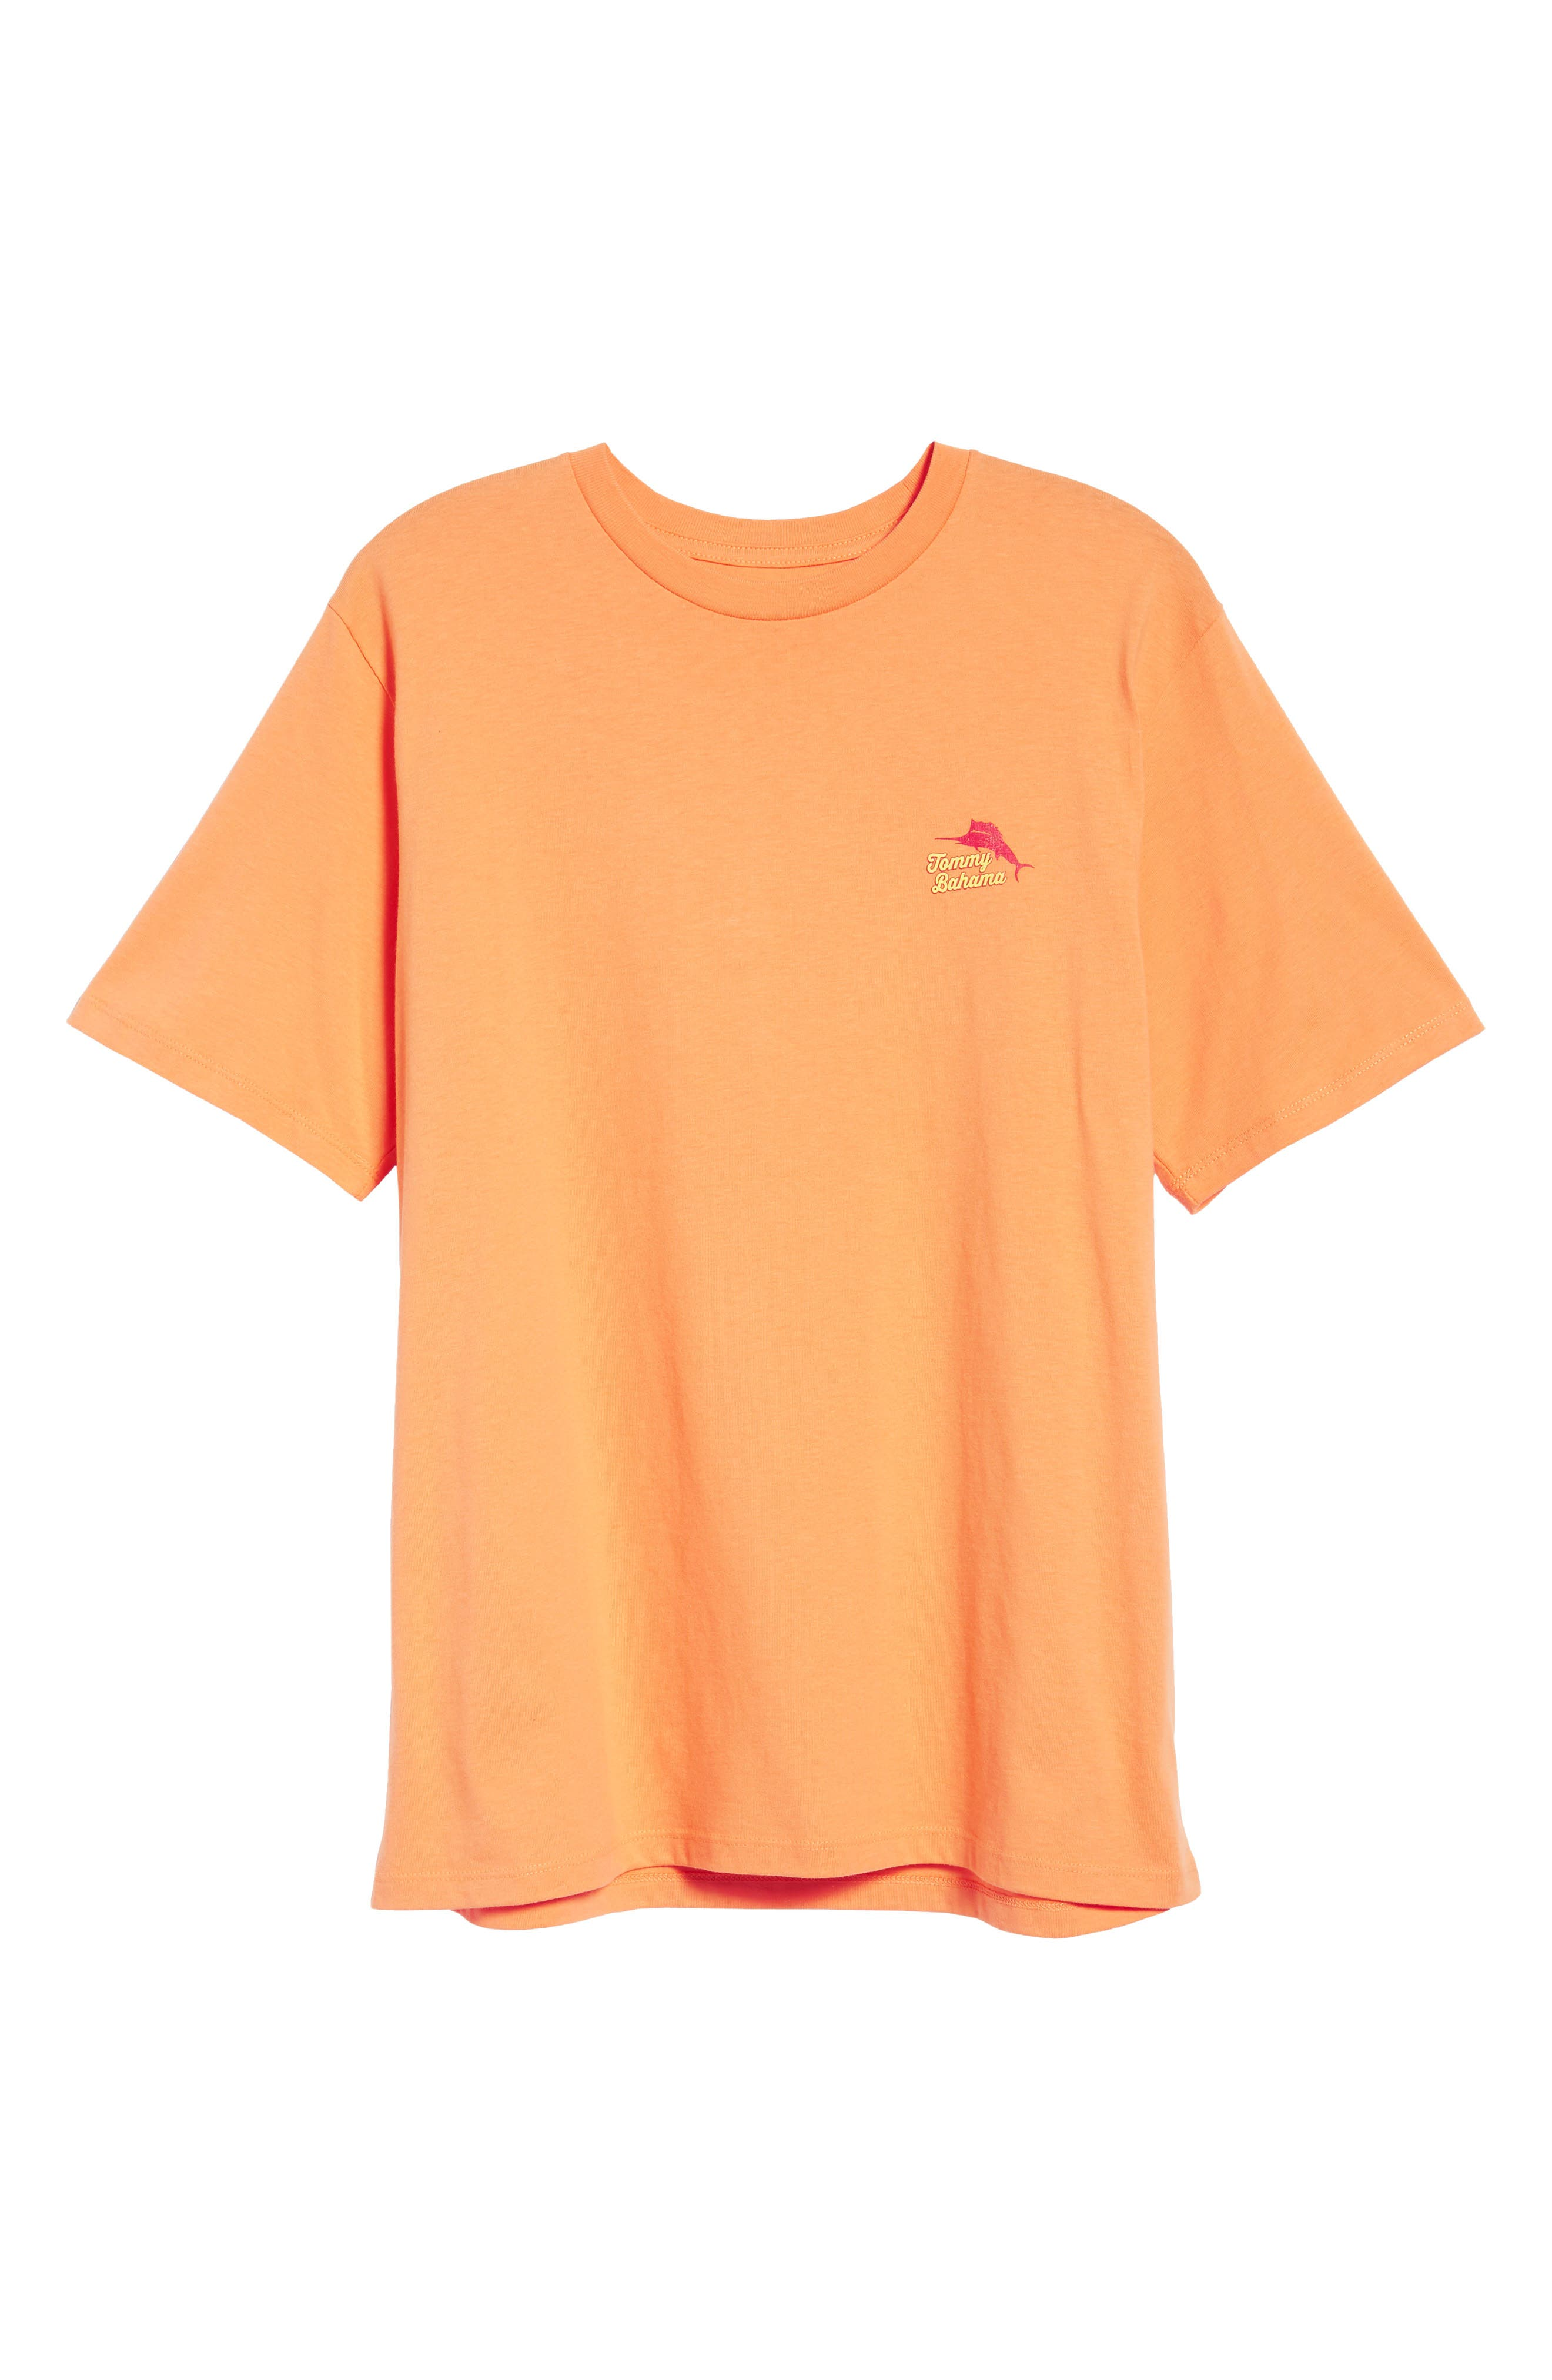 Ryes to the Occasion T-Shirt,                             Alternate thumbnail 6, color,                             Bright Apricot